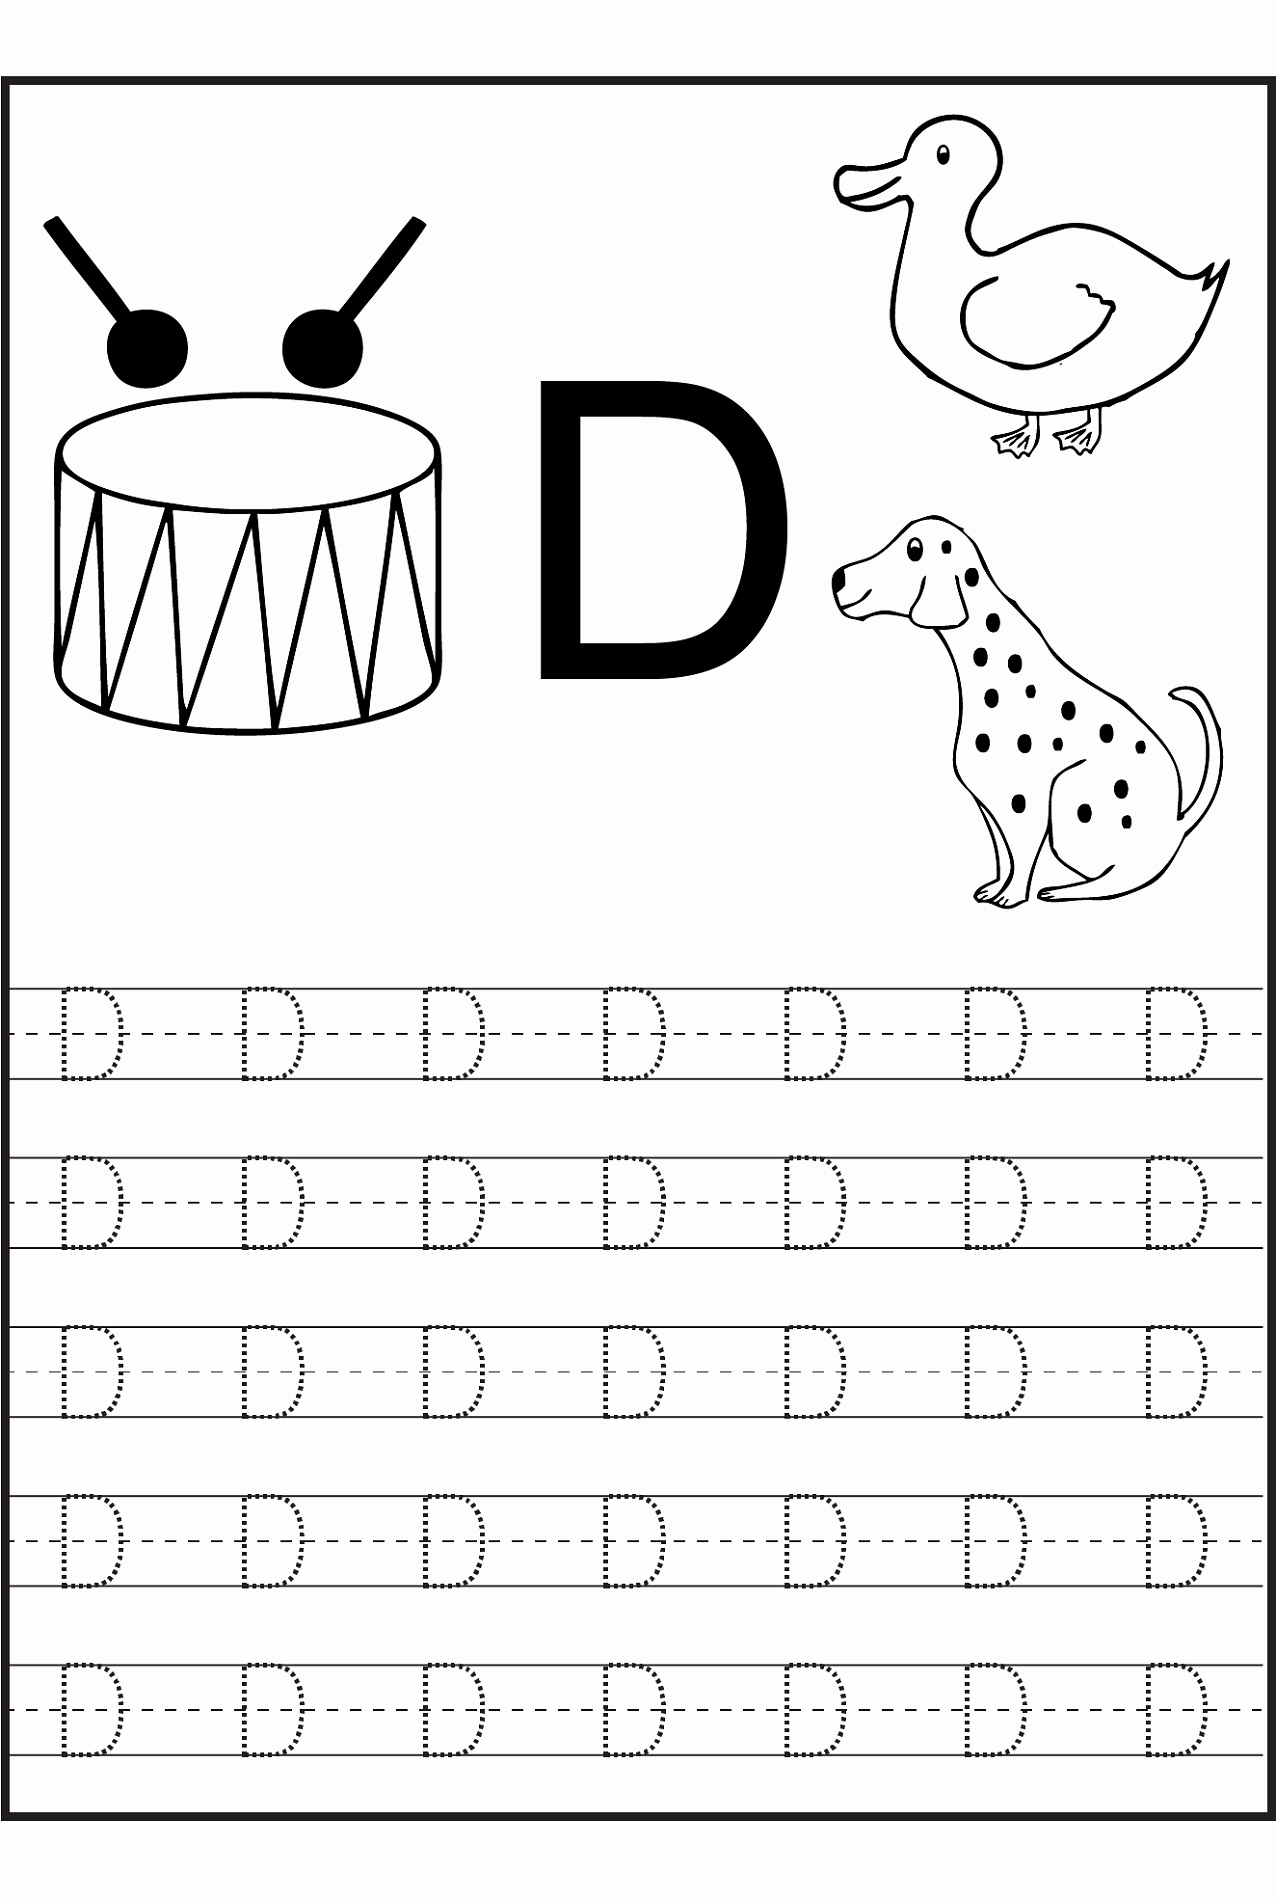 Letter D Worksheet for Preschool Fresh Pin by Dianalyn Rose Cabal On Worksheets